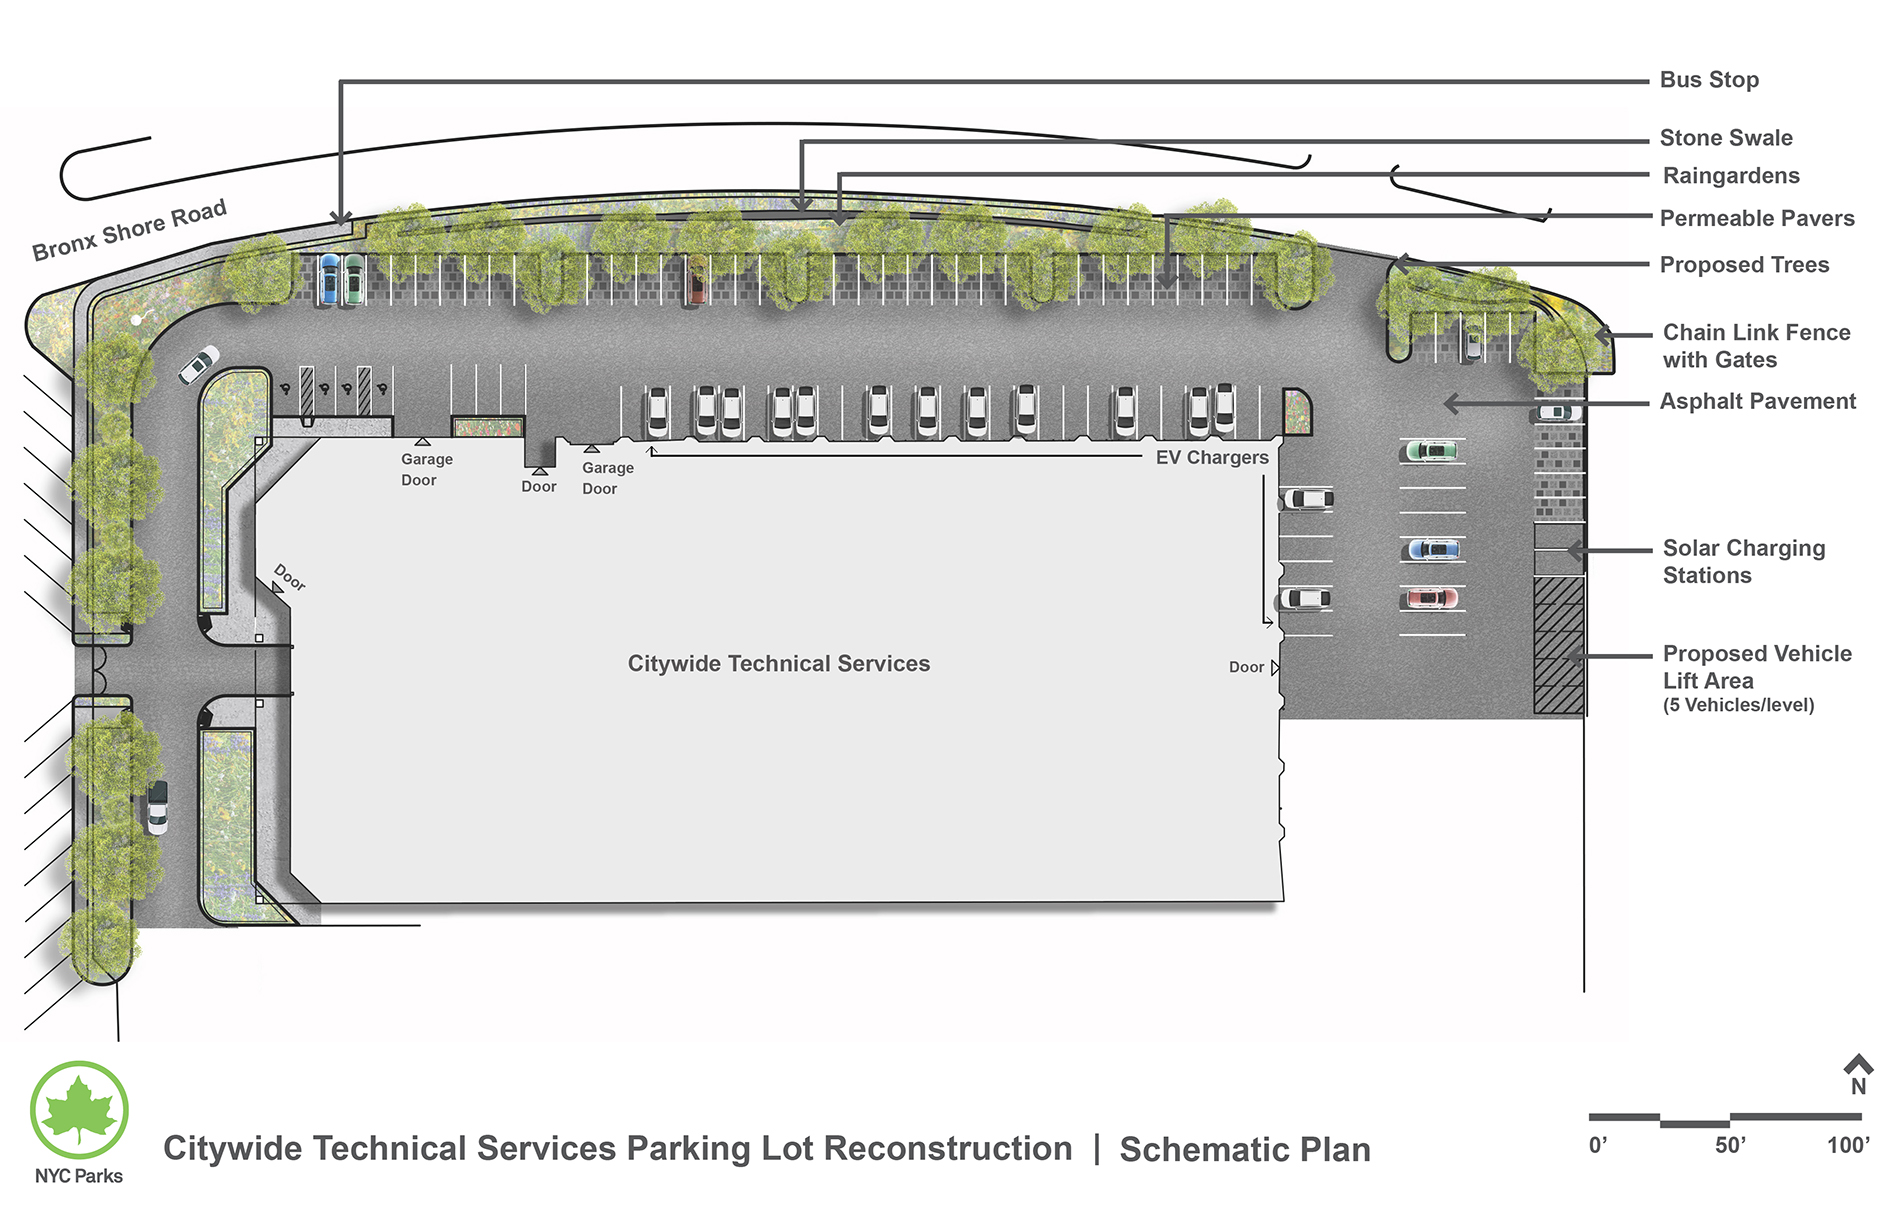 Design of 5 Boro Complex and Garage Parking Lot Reconstruction